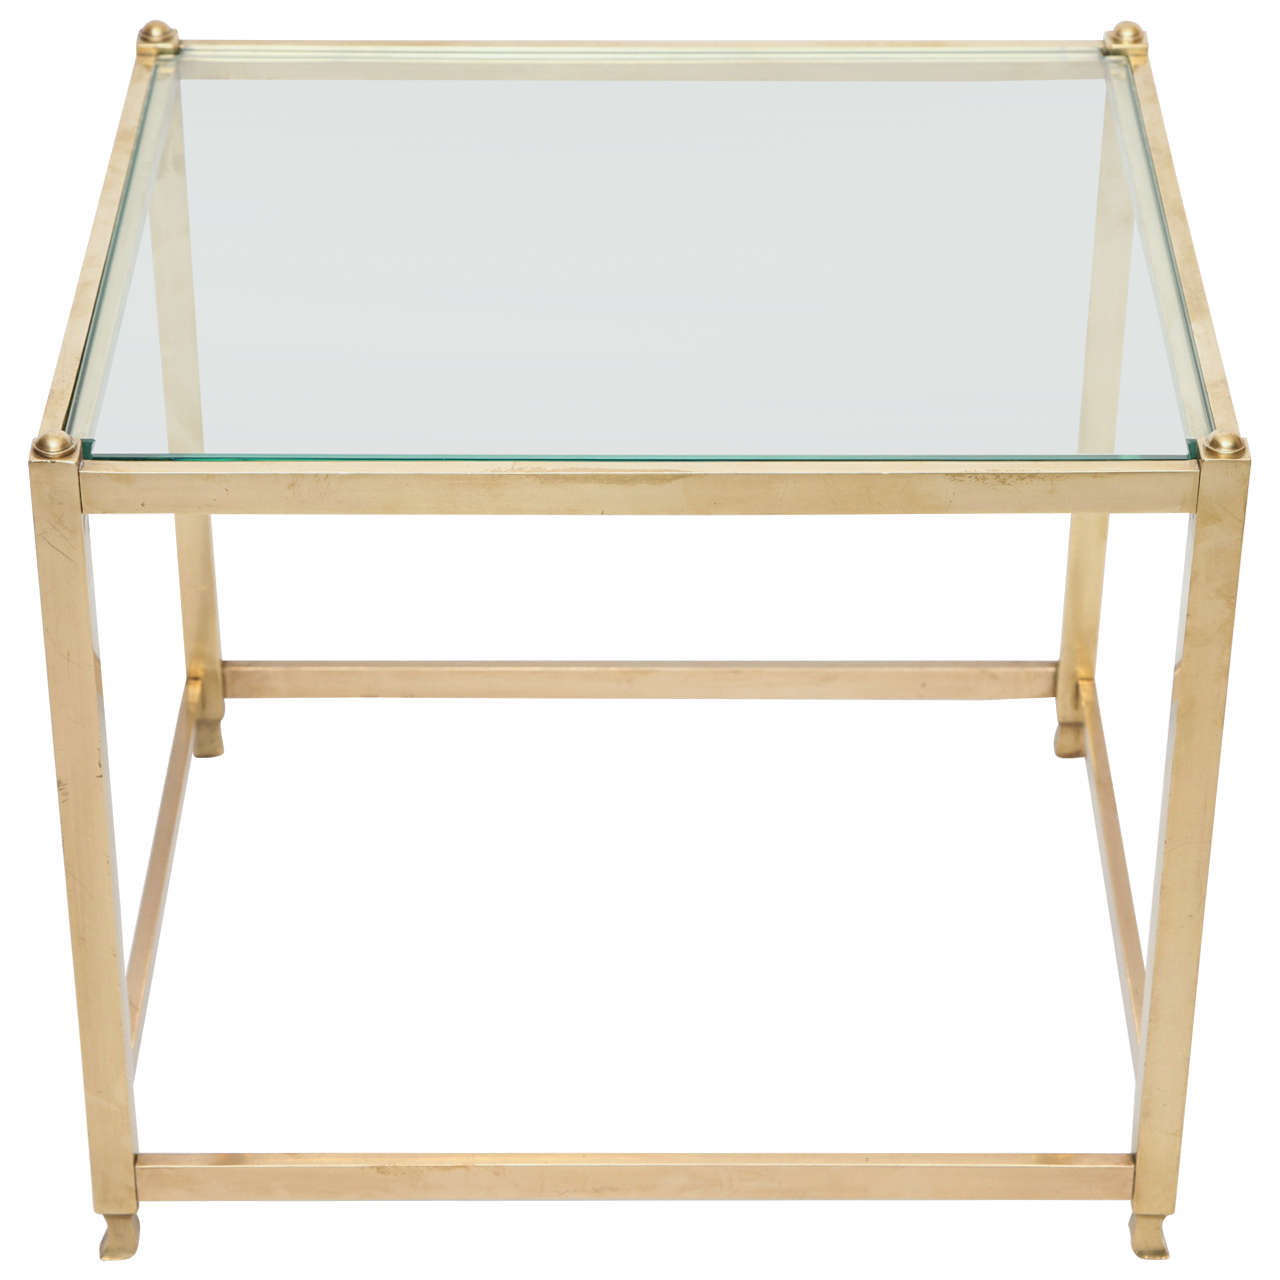 1940s Art Moderne Brass and Glass Table